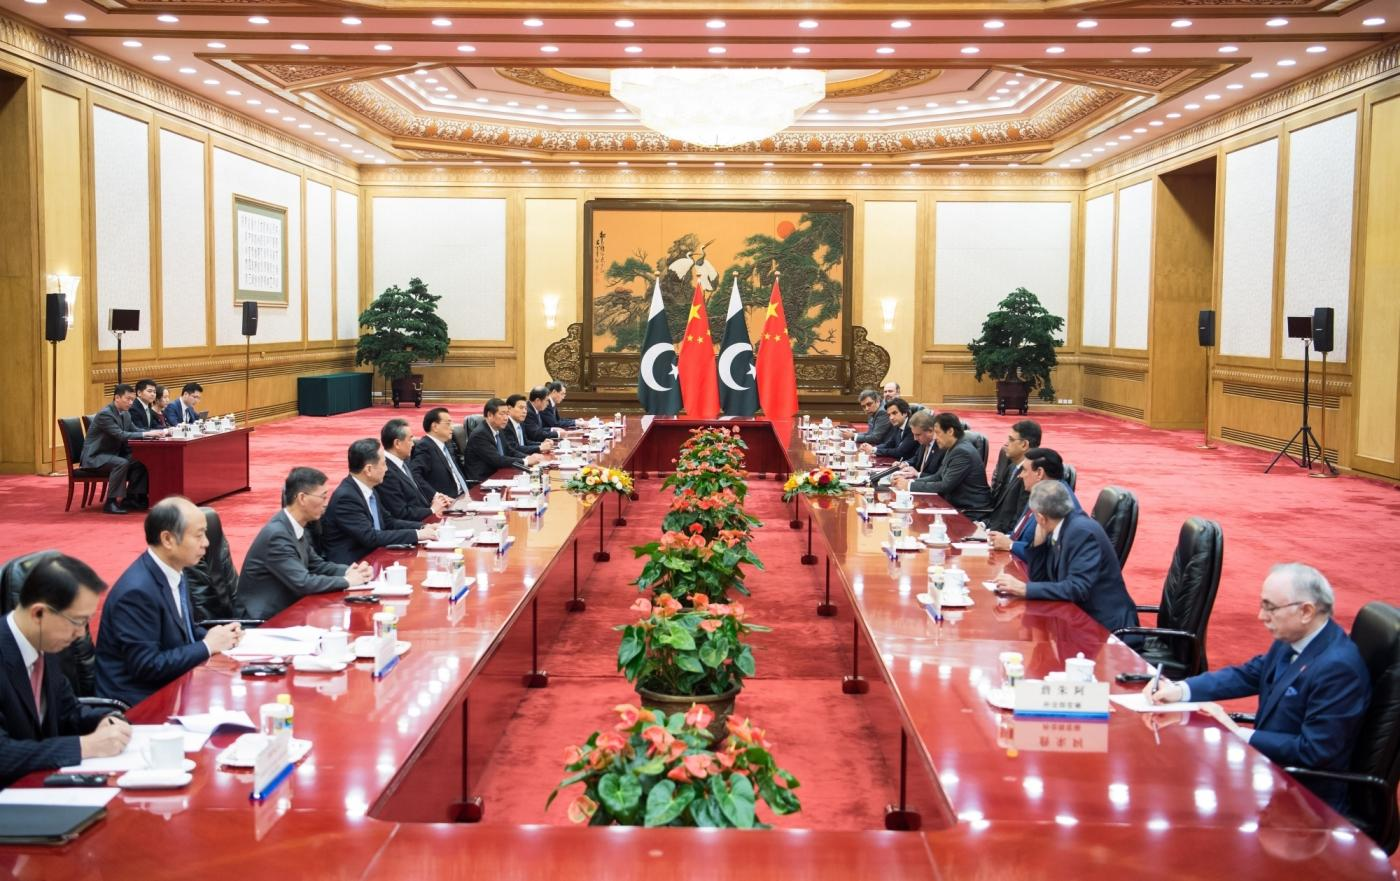 BEIJING, Nov. 3, 2018 (Xinhua) -- Chinese Premier Li Keqiang holds talks with Pakistani Prime Minister Imran Khan, who is paying an official visit to China, at the Great Hall of the People in Beijing, capital of China, Nov. 3, 2018. (Xinhua/Zhai Jianlan/IANS) by .